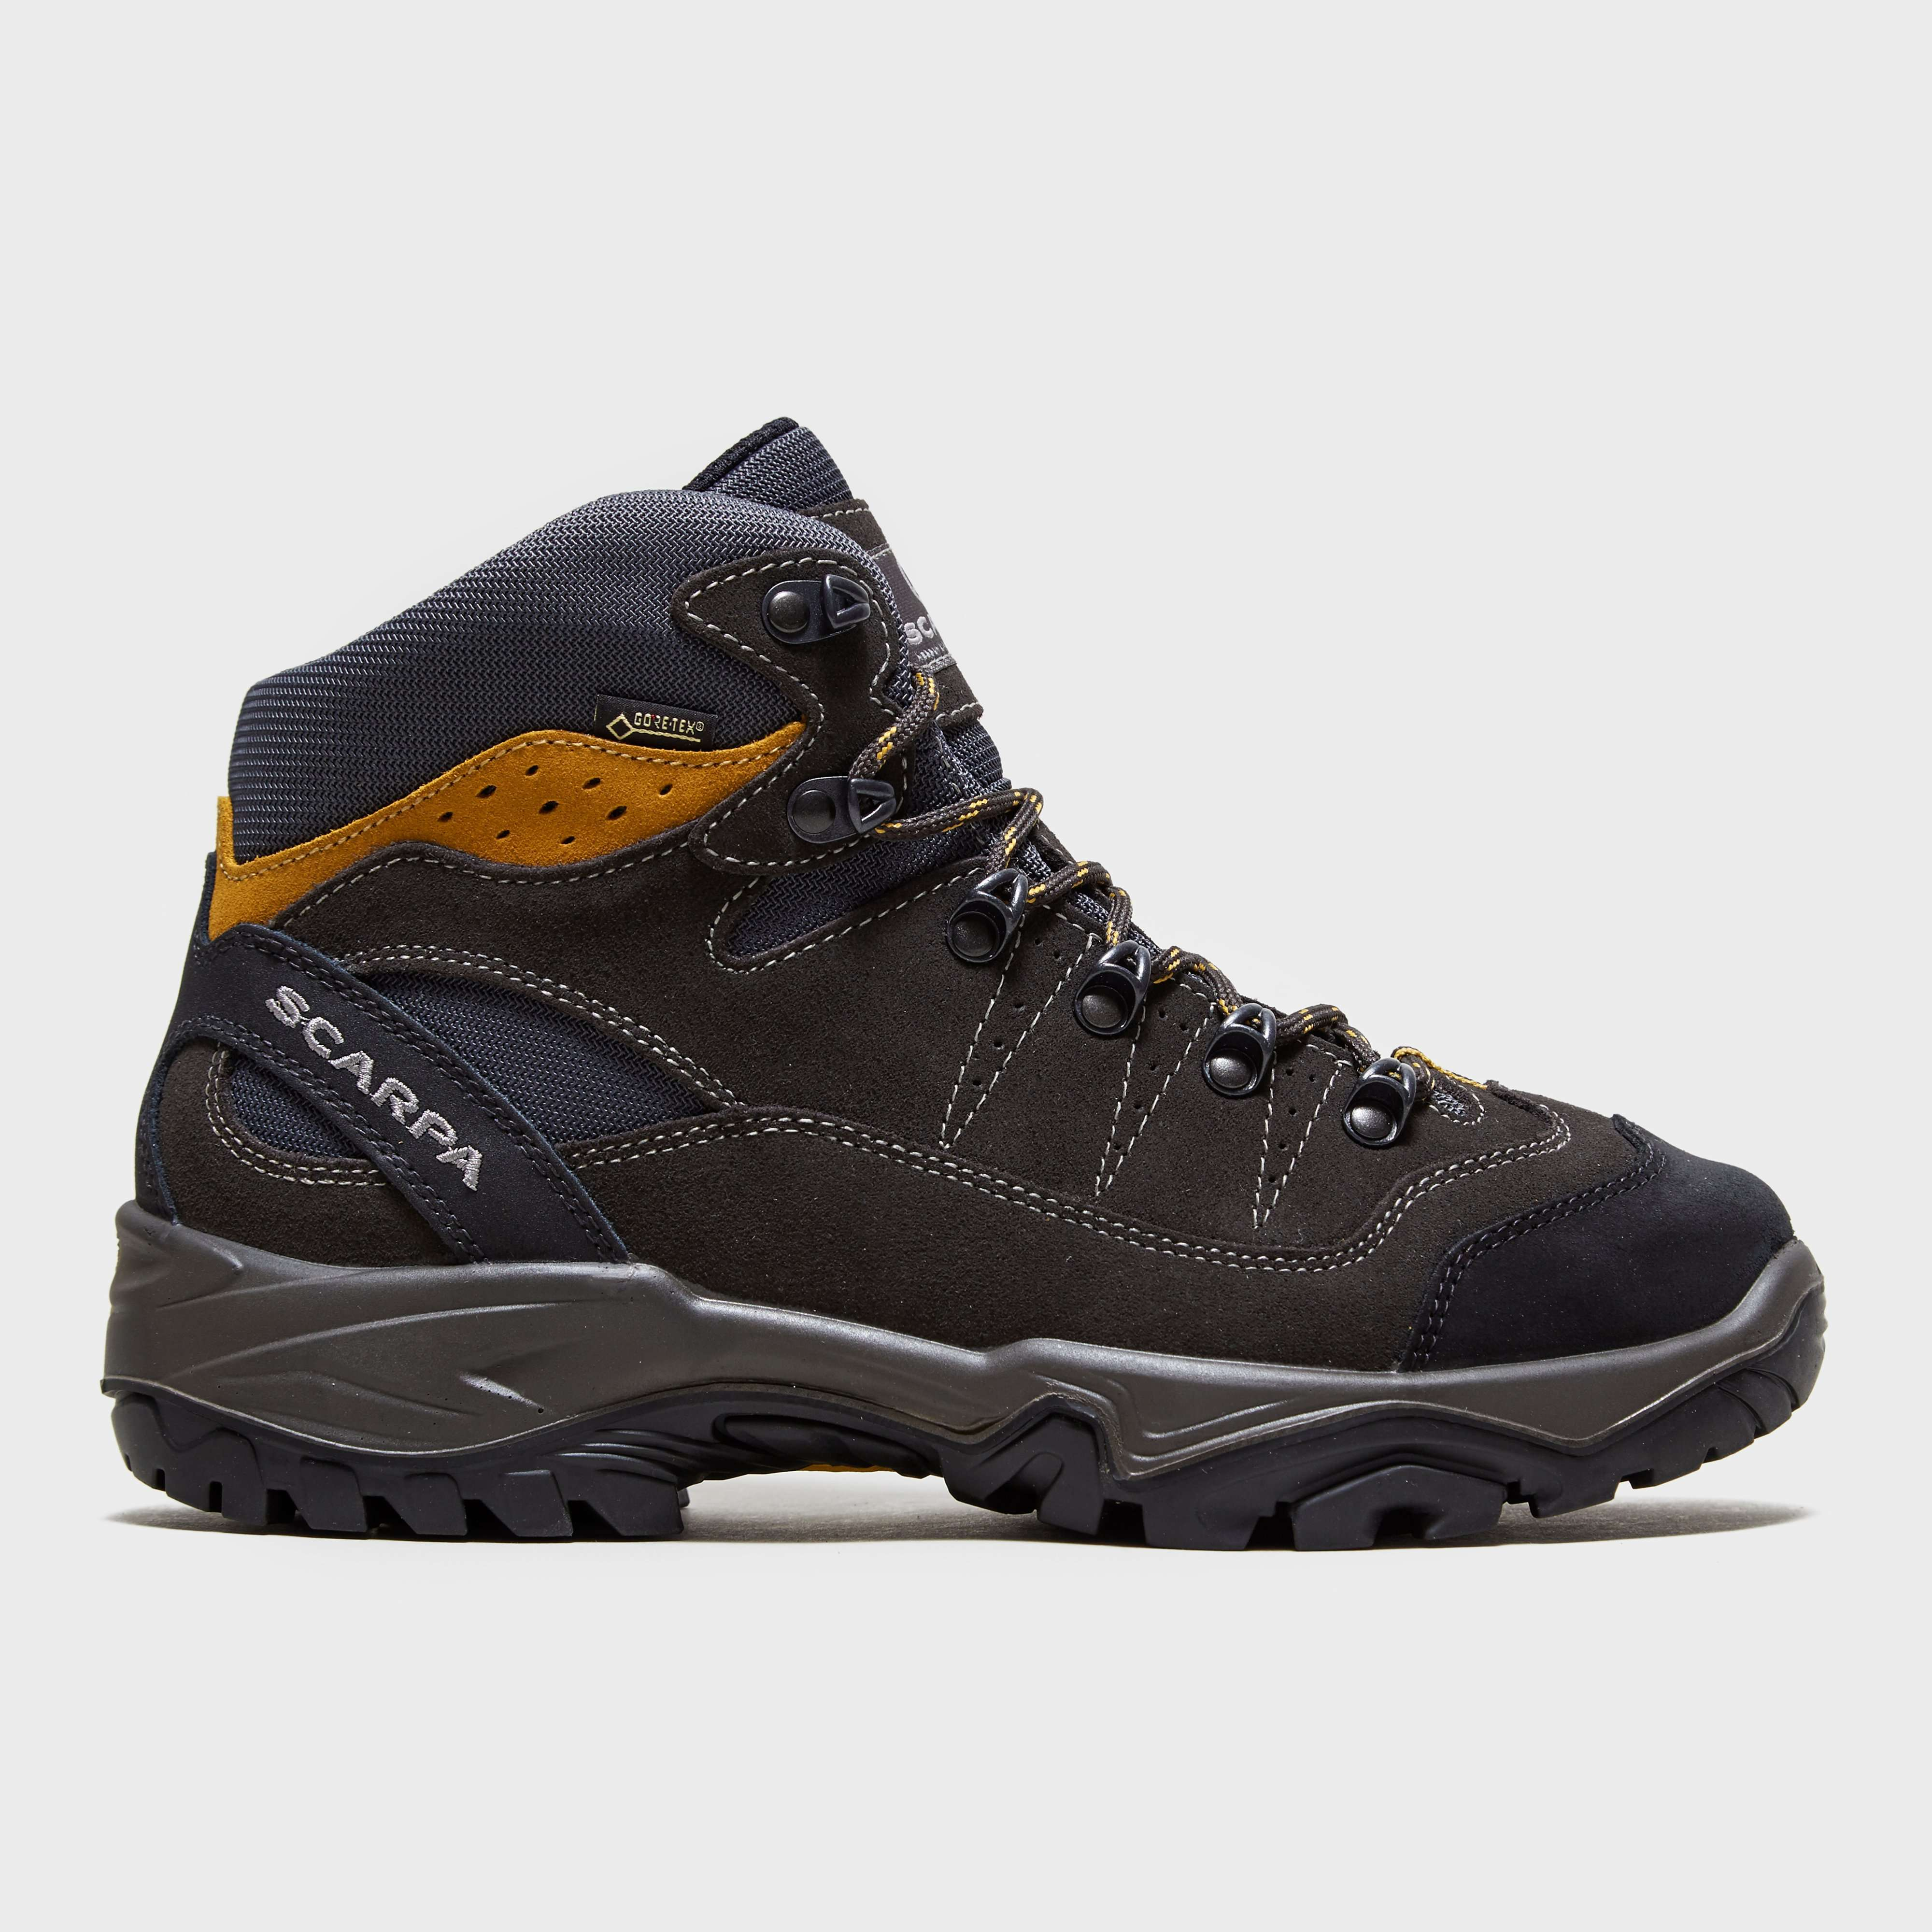 SCARPA Men's Mistral GORE-TEX® Walking Boot